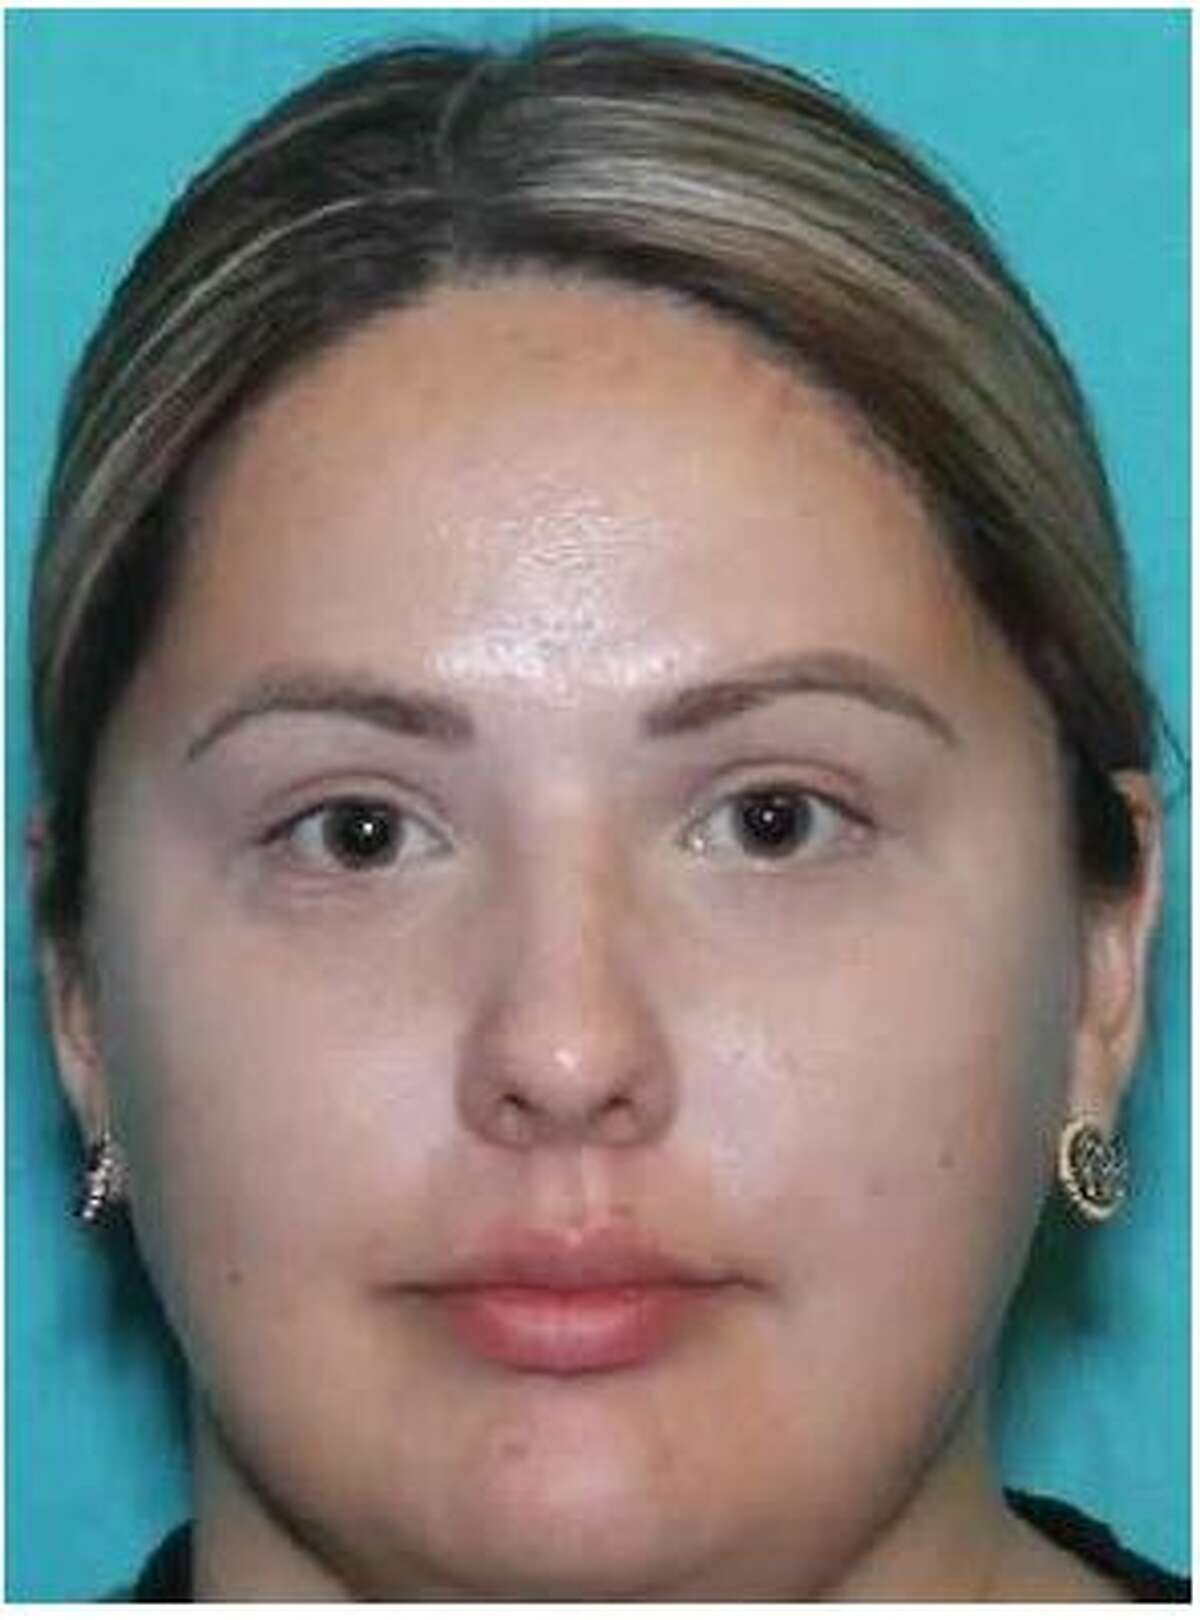 Police say Gabriella Gonzalez has a medical condition and needs her medication. She disappeared Oct. 15.